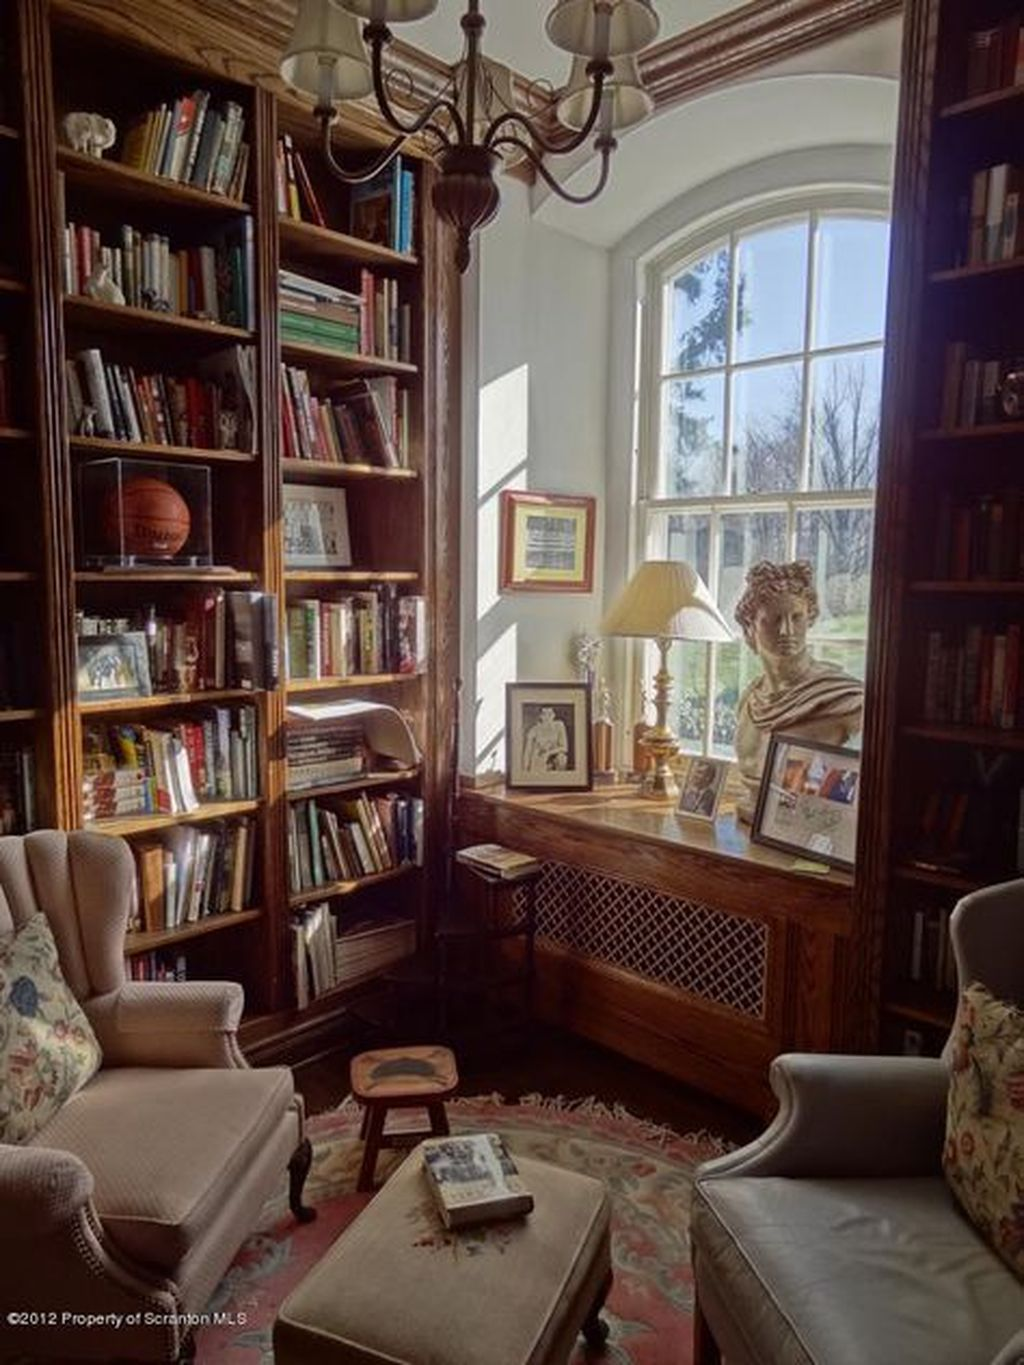 Library Study Room Ideas: Stunning Home Library Ideas (With Images)